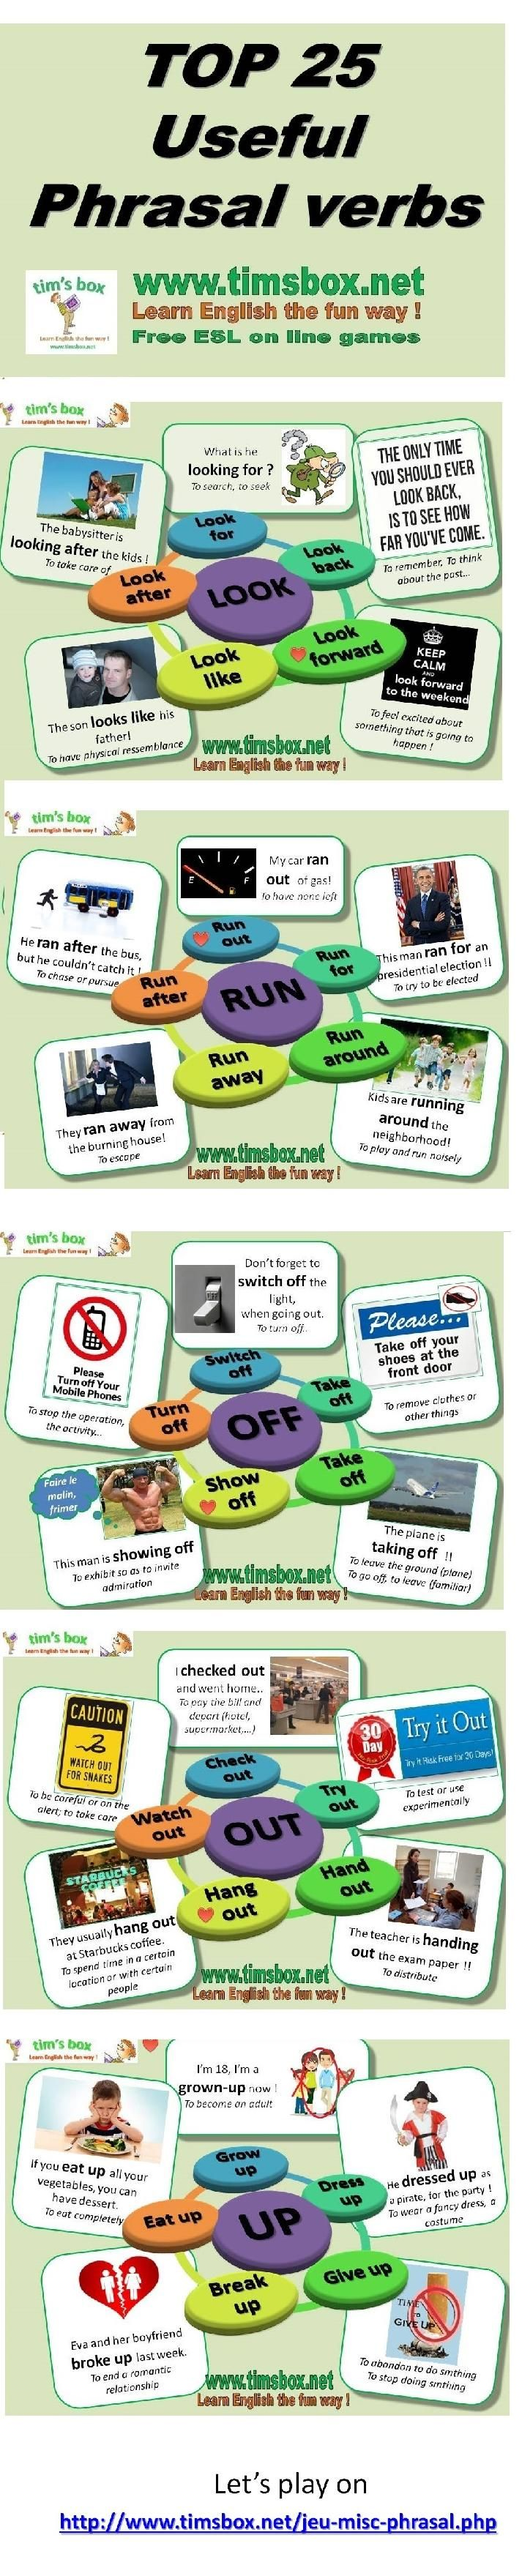 top 25 useful phrasal verbs